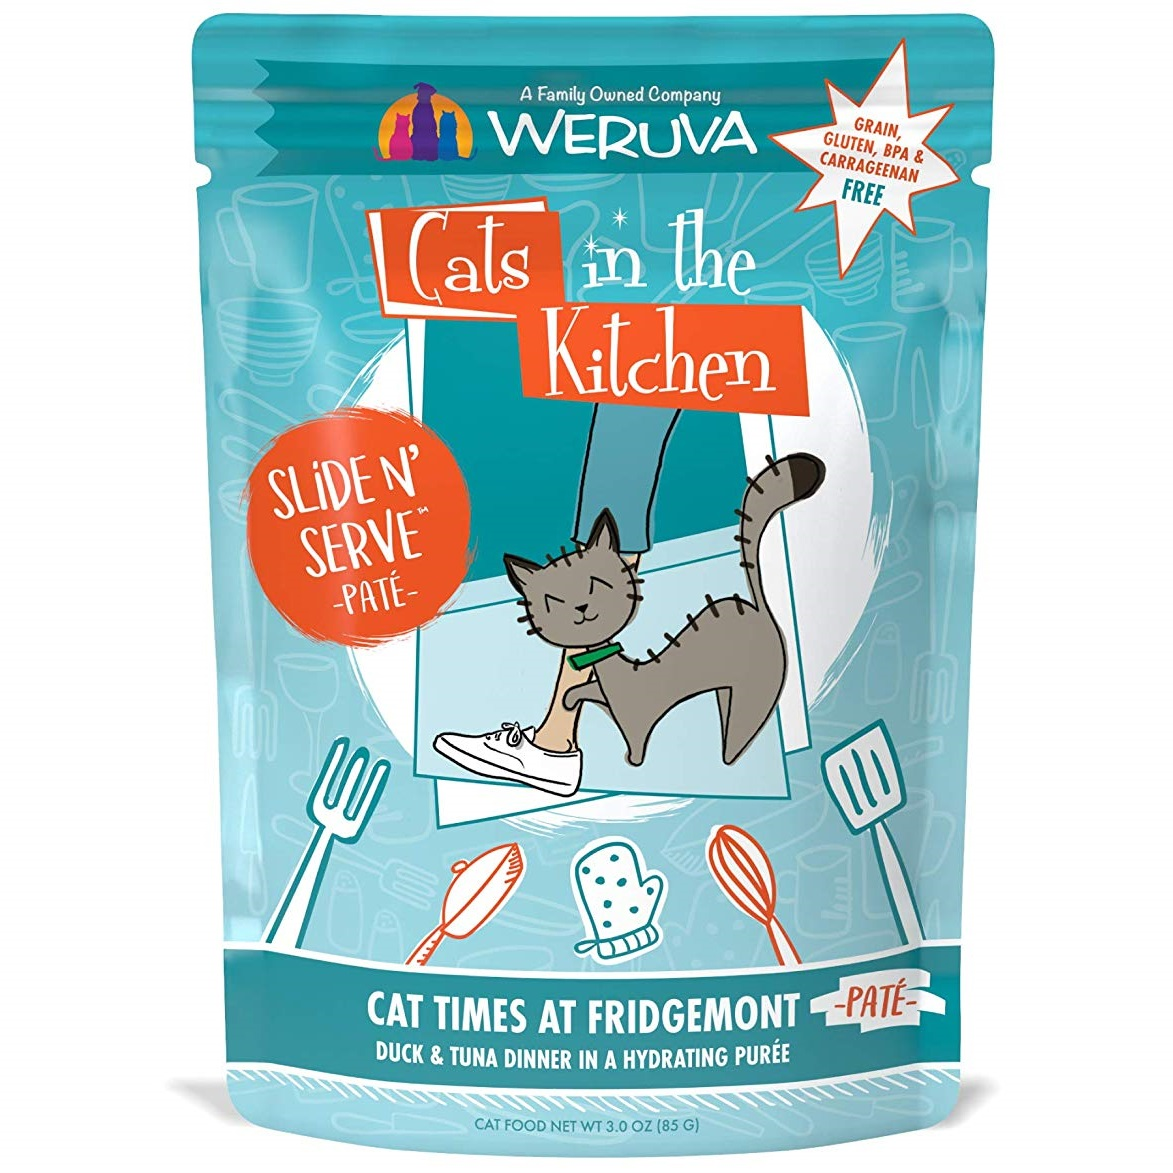 Weruva Cats In The Kitchen Pate Cat Times at Fridgemont Duck & Tuna Dinner in Puree Grain-Free Wet Cat Food, 3-oz pouch